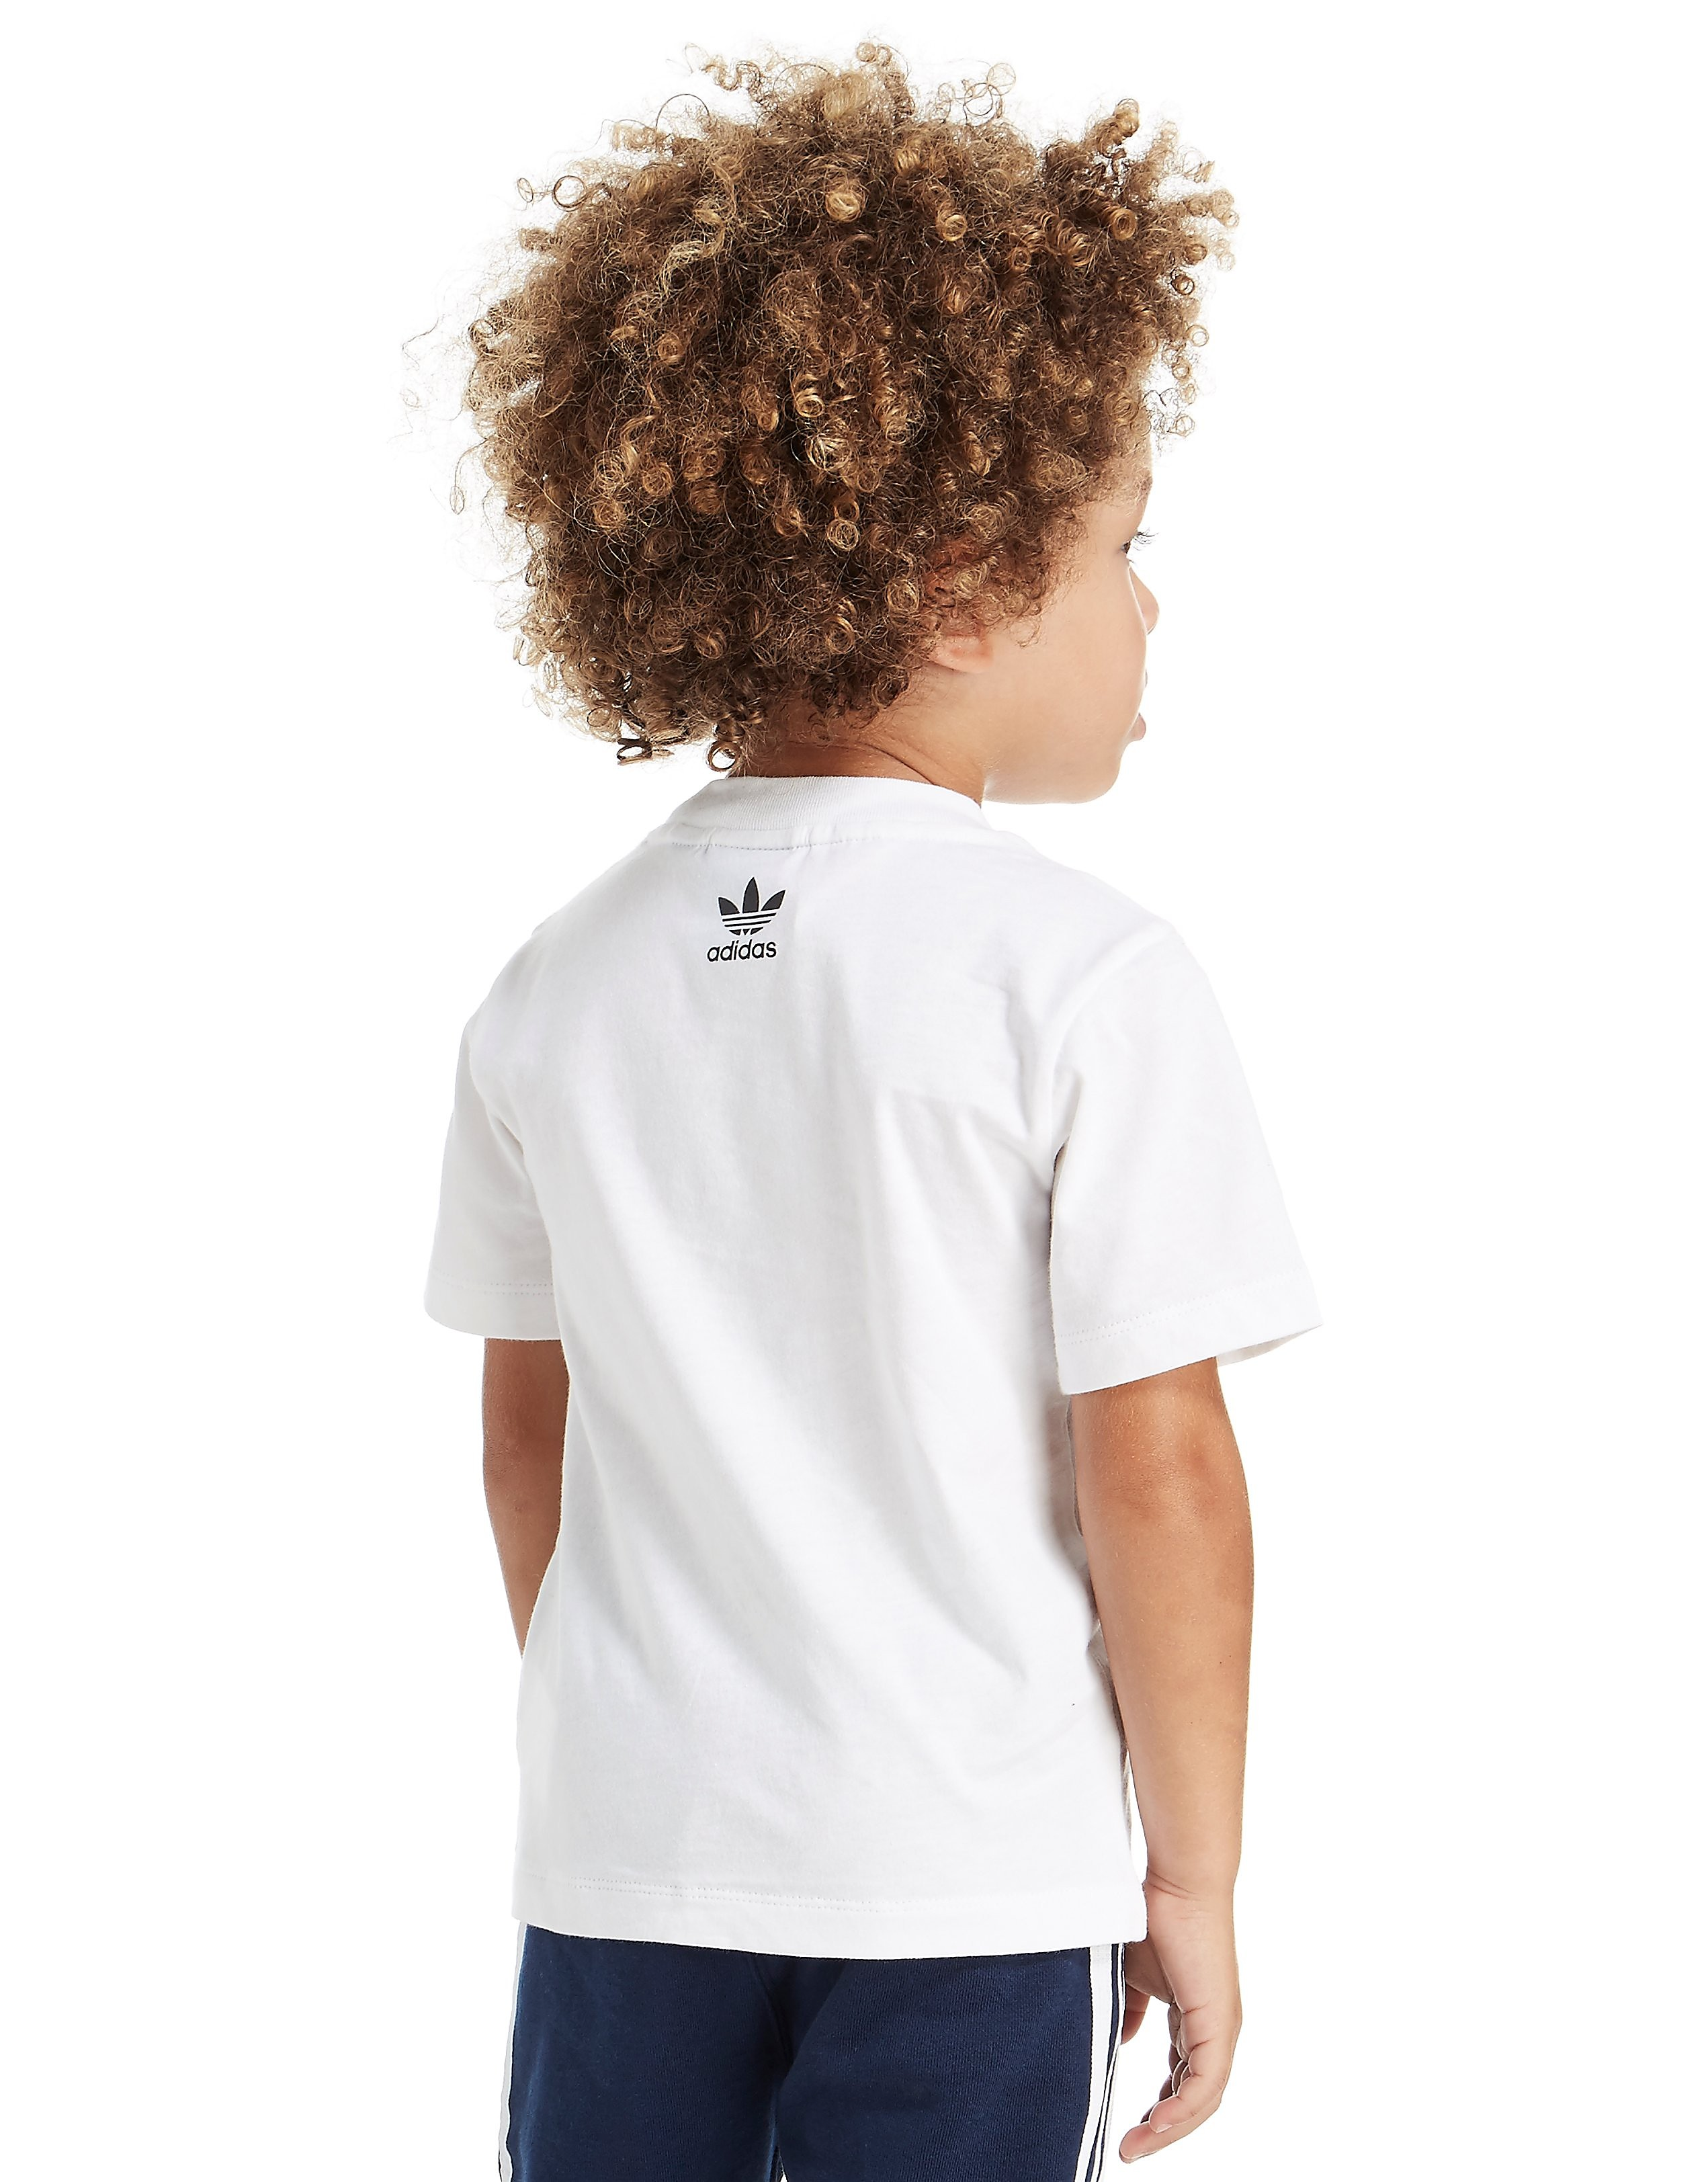 adidas Originals Trefoil Series T-shirt Bebè